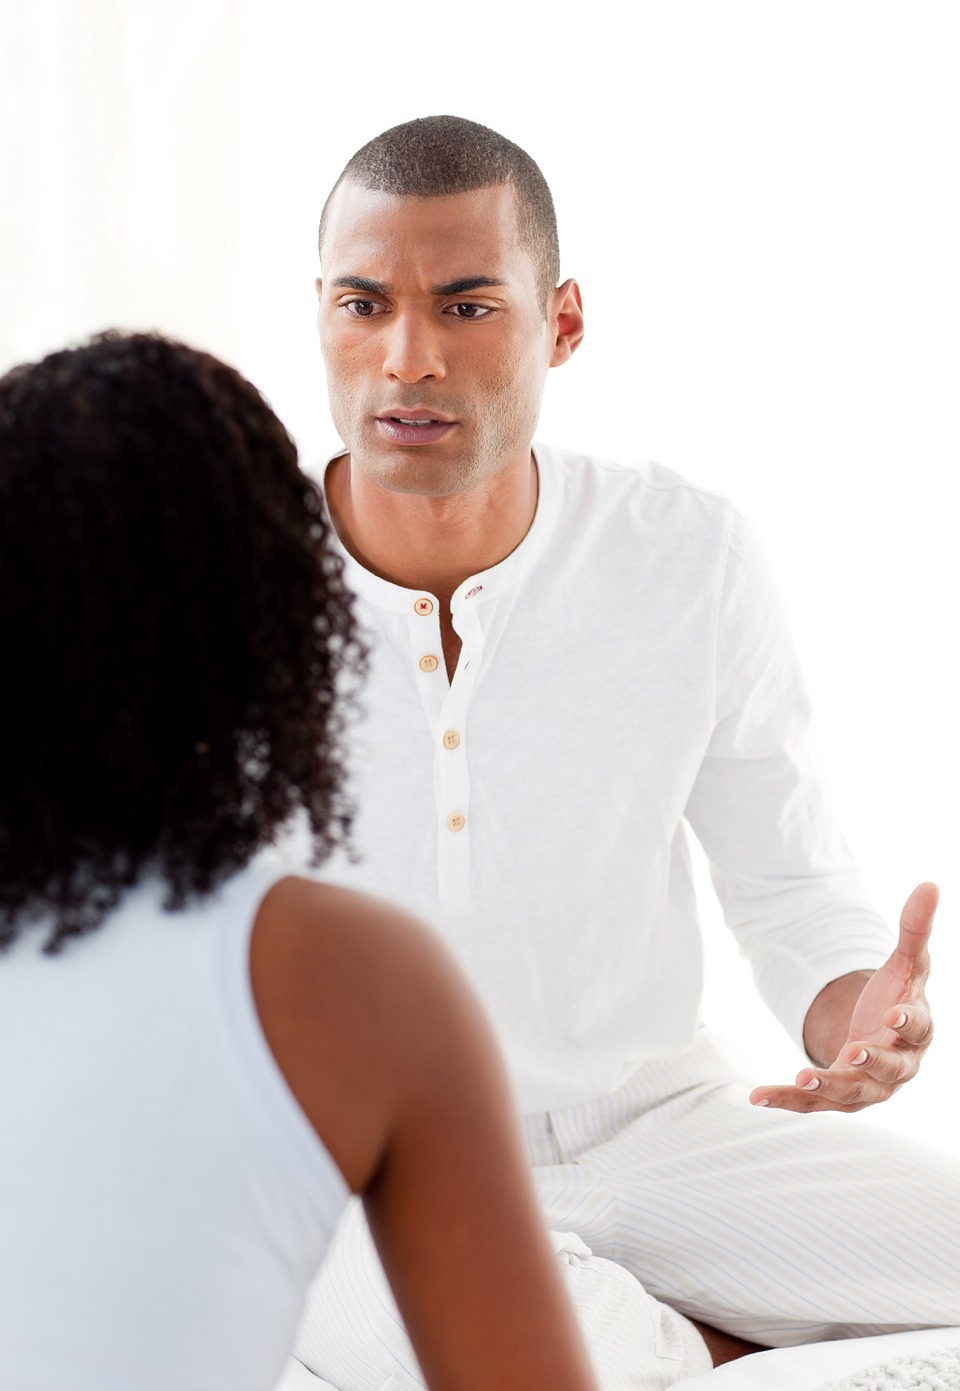 5. NEVER ACCUSE Instead of accusing him of infidelity or other misbehavior over a misdemeanour, simply ask him. No one likes being rashly accused, guilty or not. Avoid acting rashly, and he's more likely to tell you the truth. When you explode he'll be afraid of making you angrier.